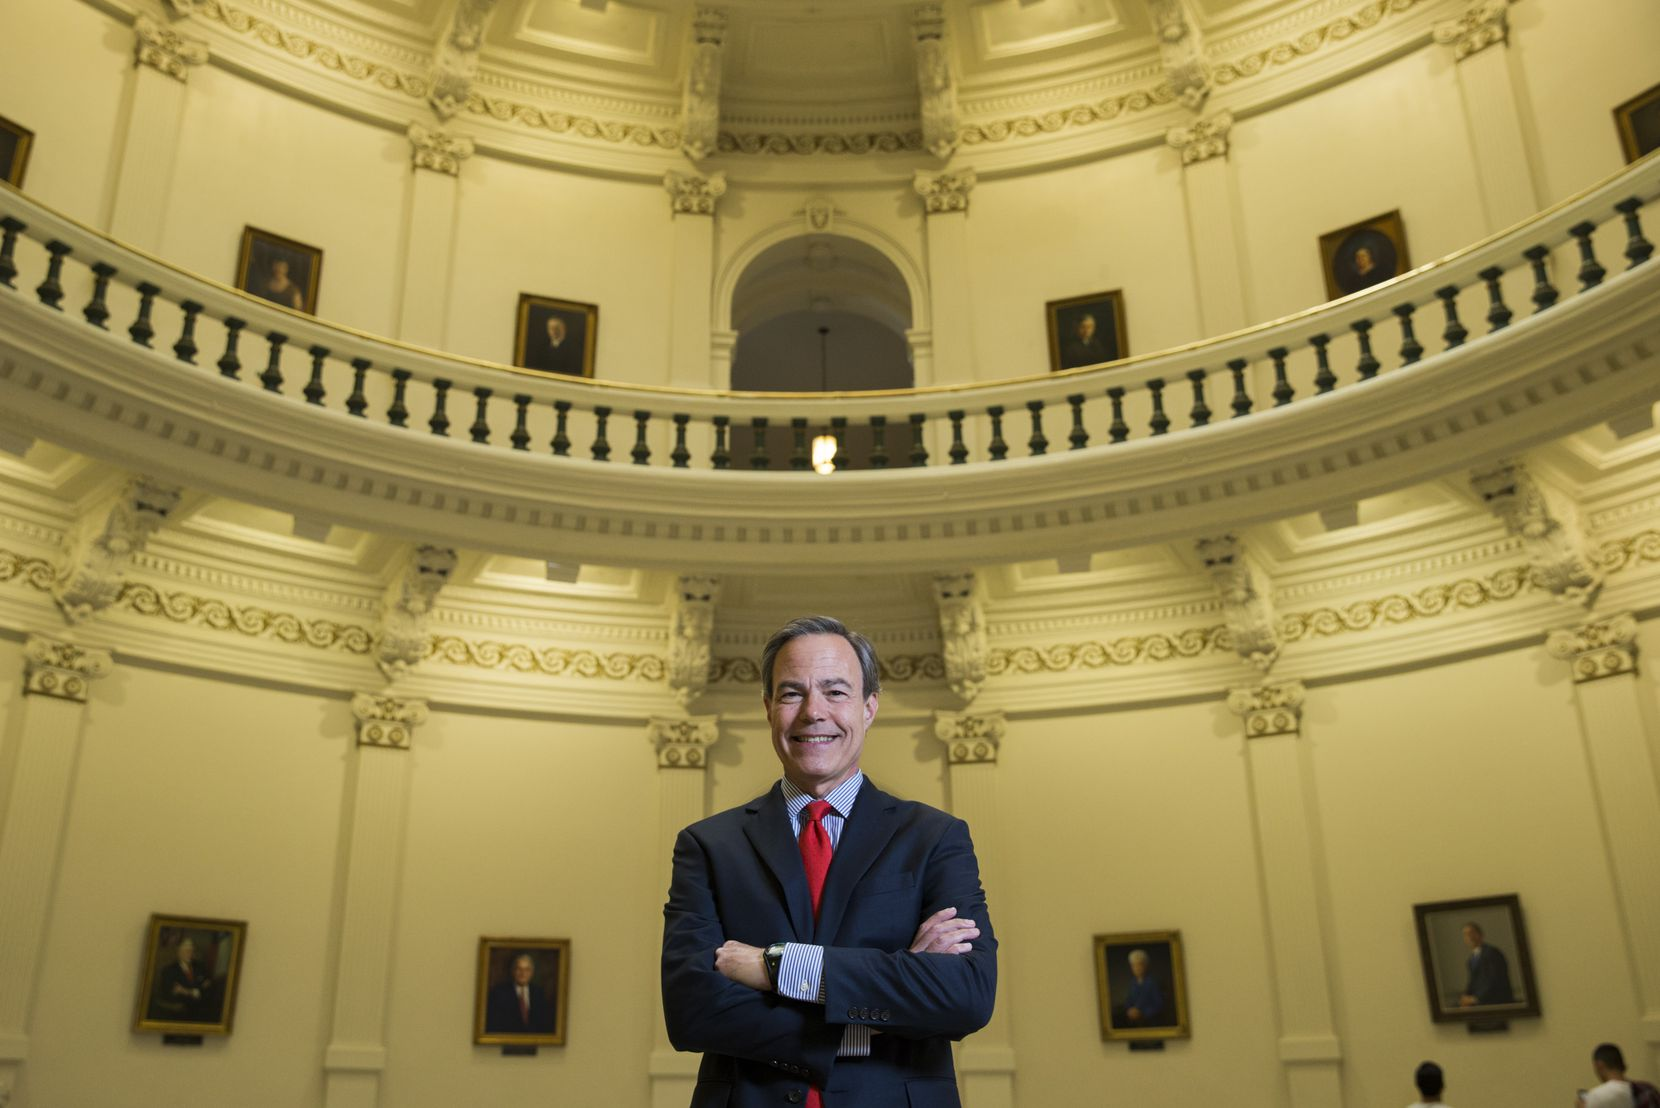 Texas Speaker of the House Joe Straus poses for a portrait in the rotunda of the Texas state capitol on Monday, December 11, 2017 in Austin.